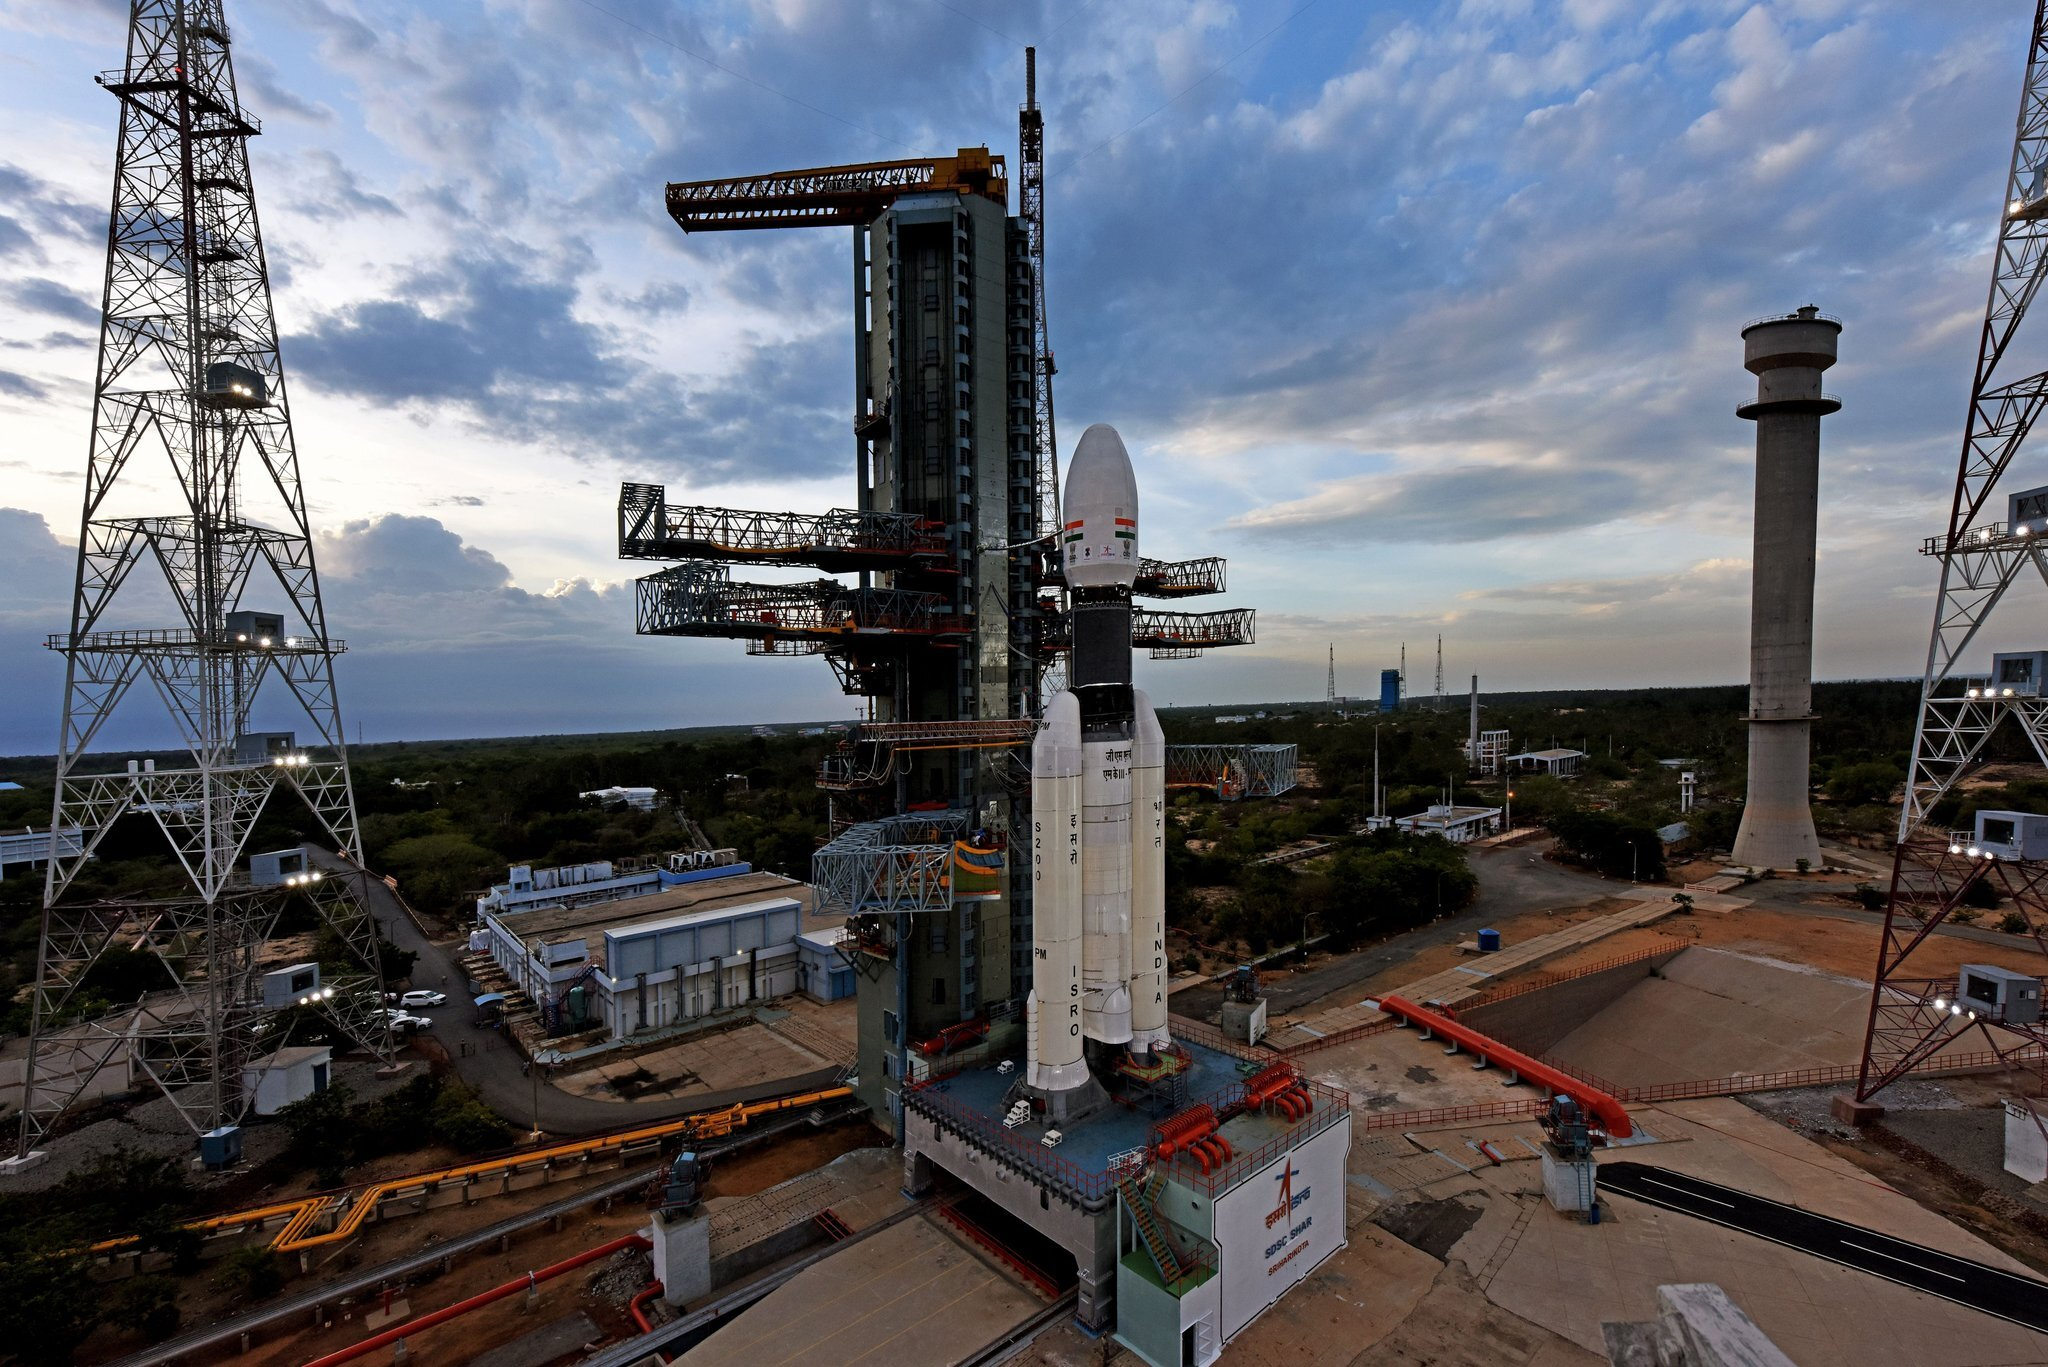 India's Geosynchronous Satellite Launch Vehicle Mark III rocket sits on the pad awaiting liftoff